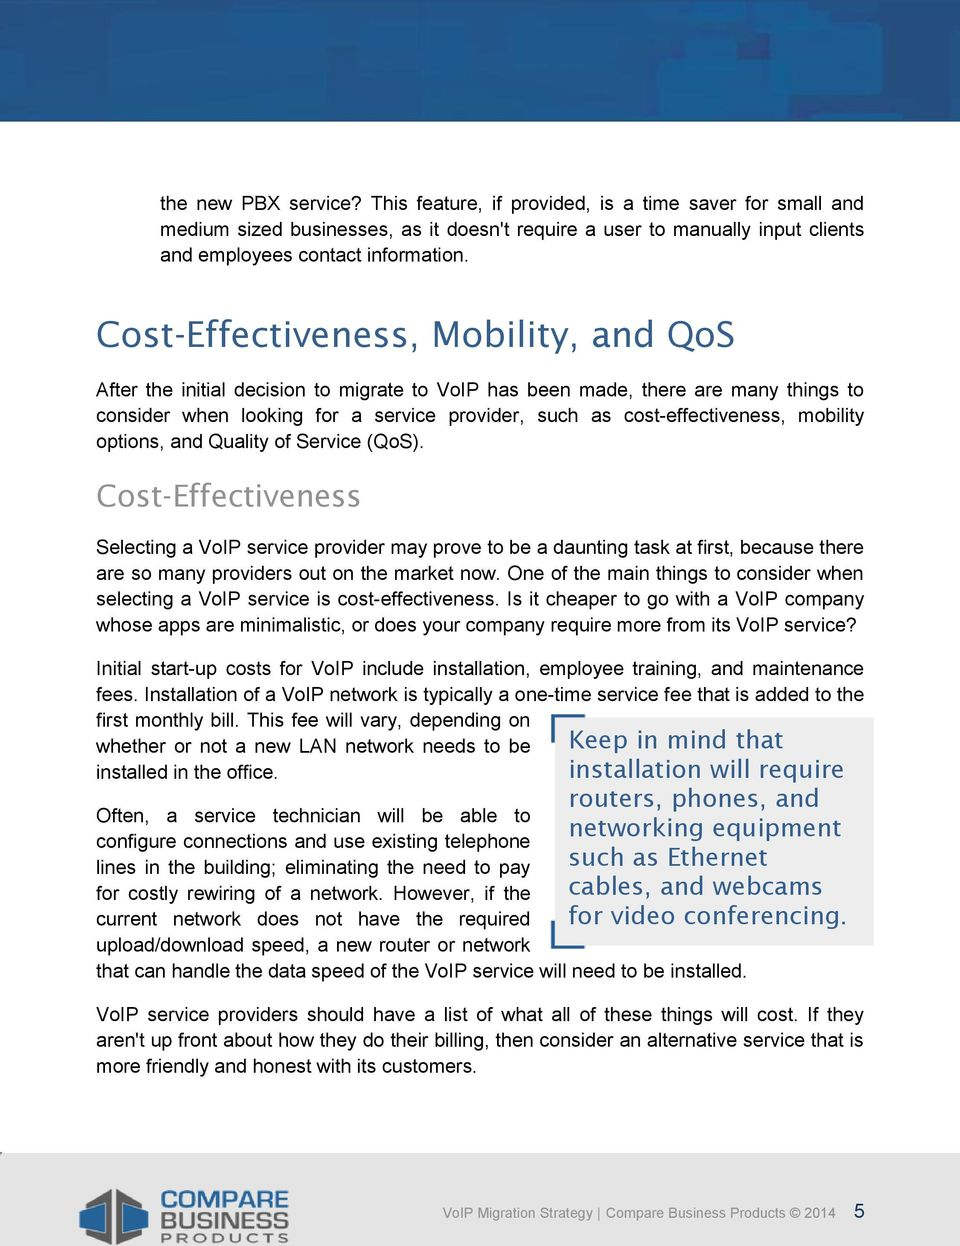 mobility options, and Quality of Service (QoS).